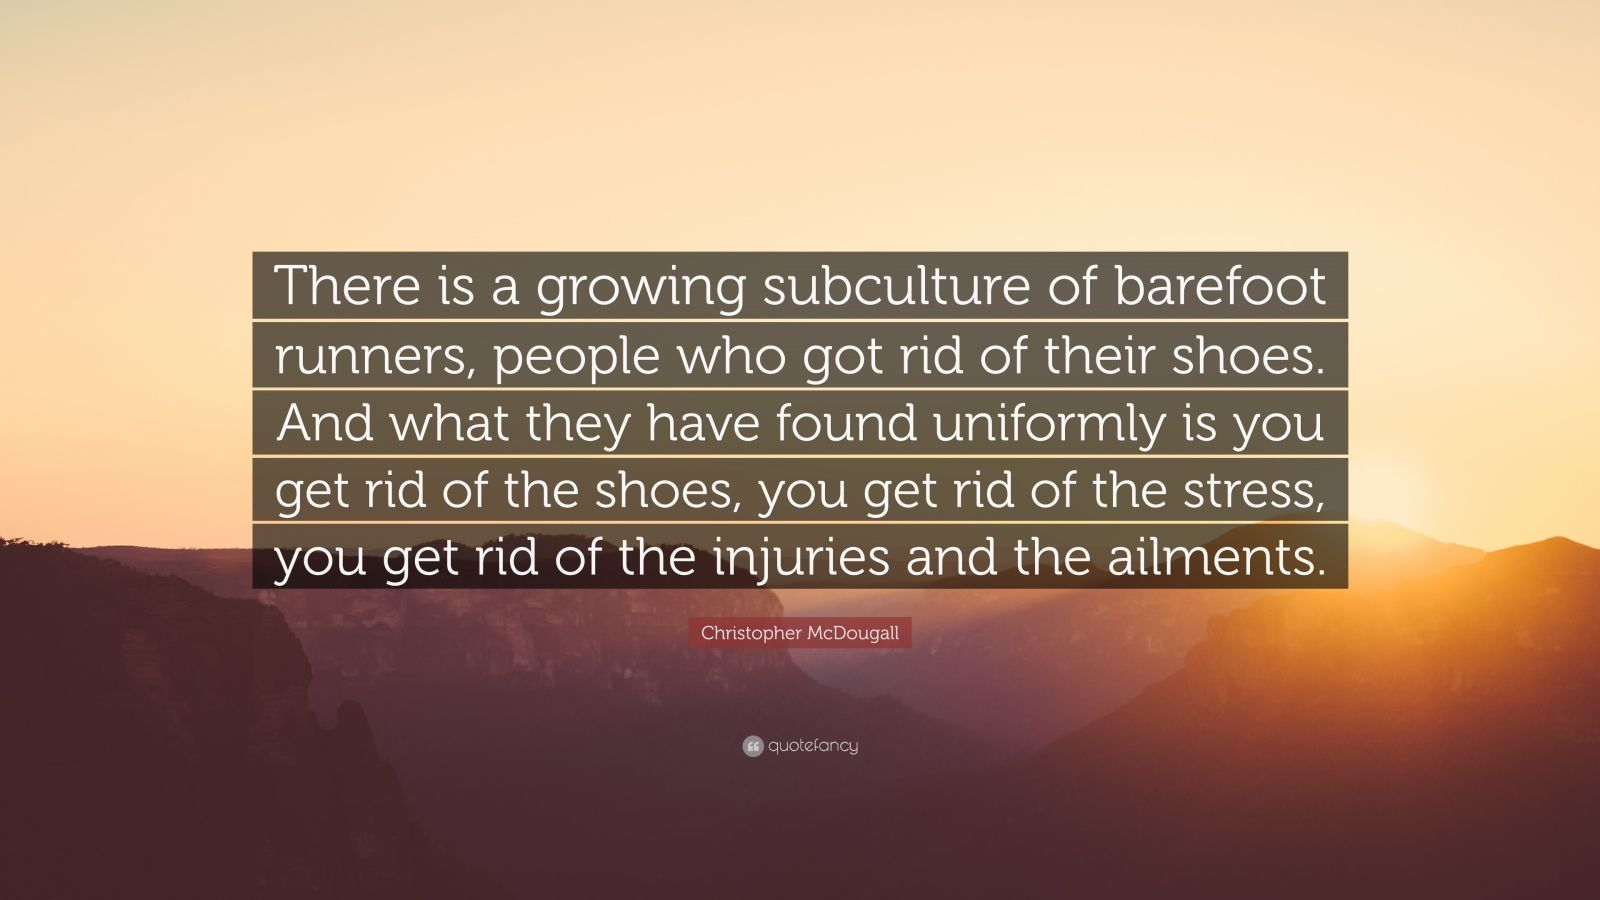 """Christopher McDougall Quote: """"There is a growing subculture of barefoot runners, people who got rid of their shoes. And what they have found uniformly is you get rid of the shoes, you get rid of the stress, you get rid of the injuries and the ailments."""""""